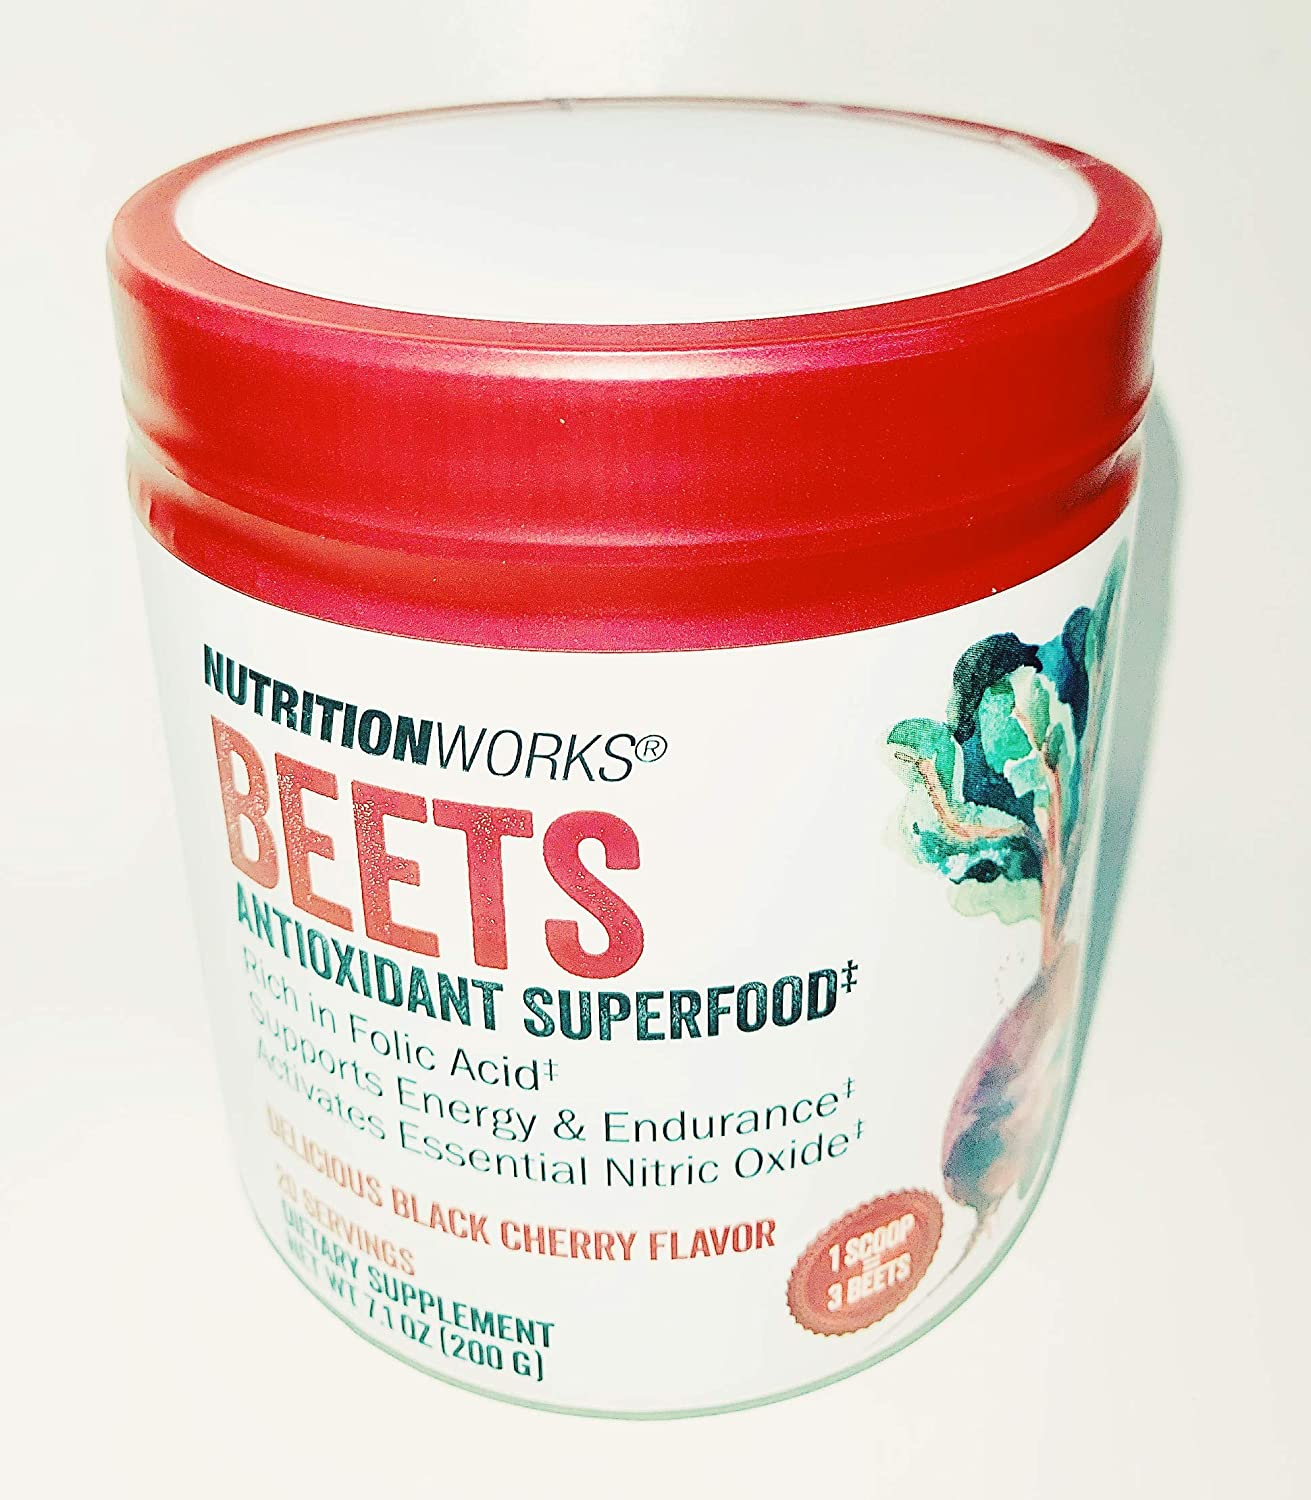 Nutritionworks Beets Antioxidant Superfood